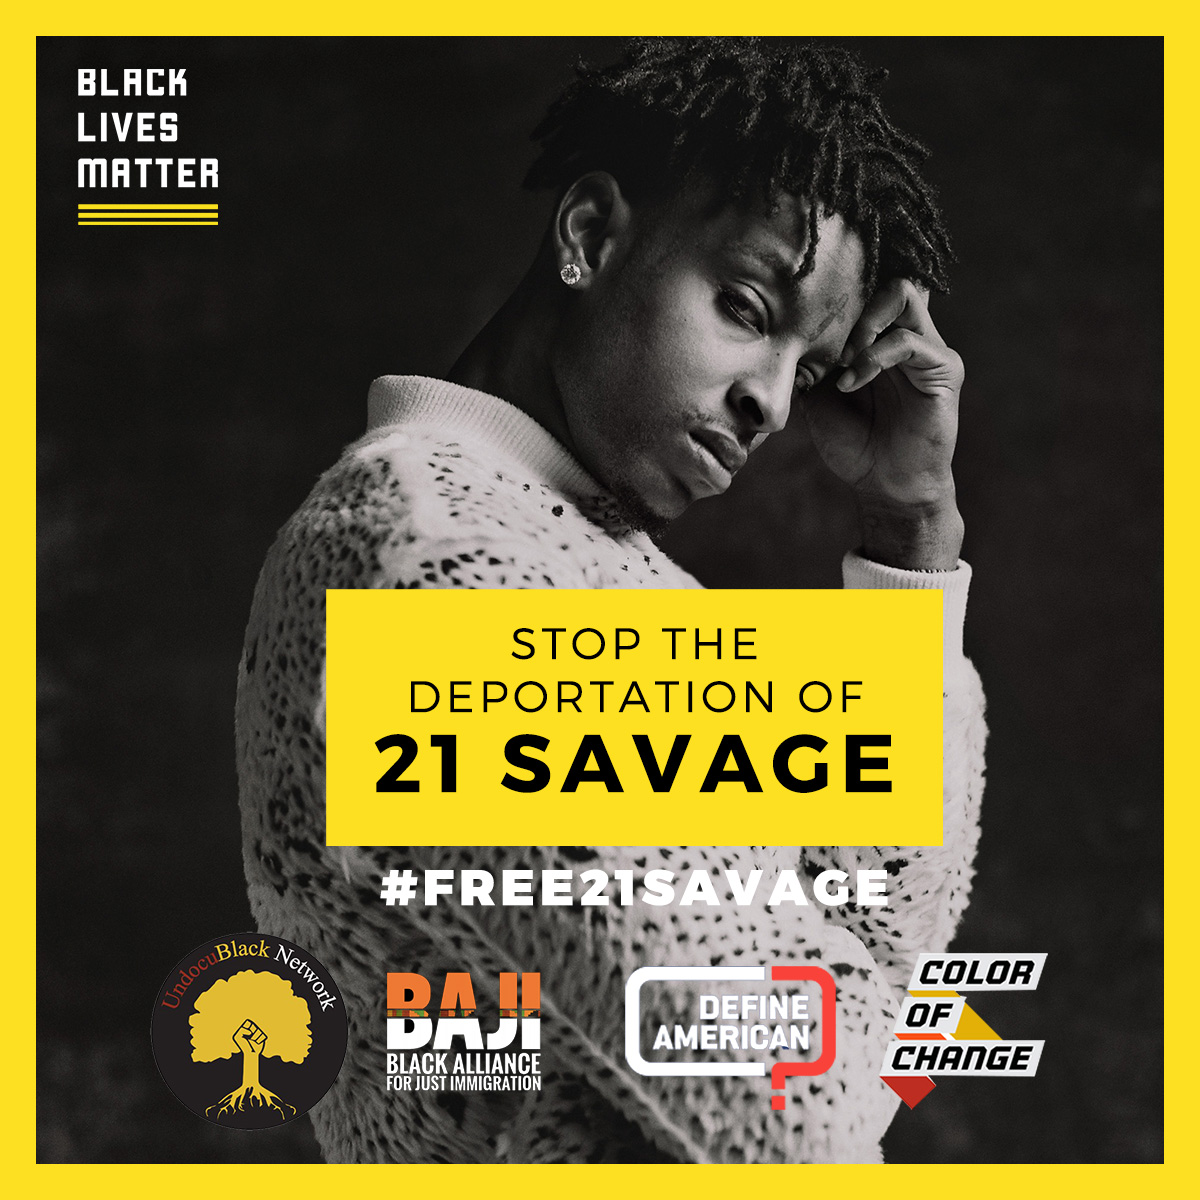 Petition Delivery: Bring 21 Savage Home!